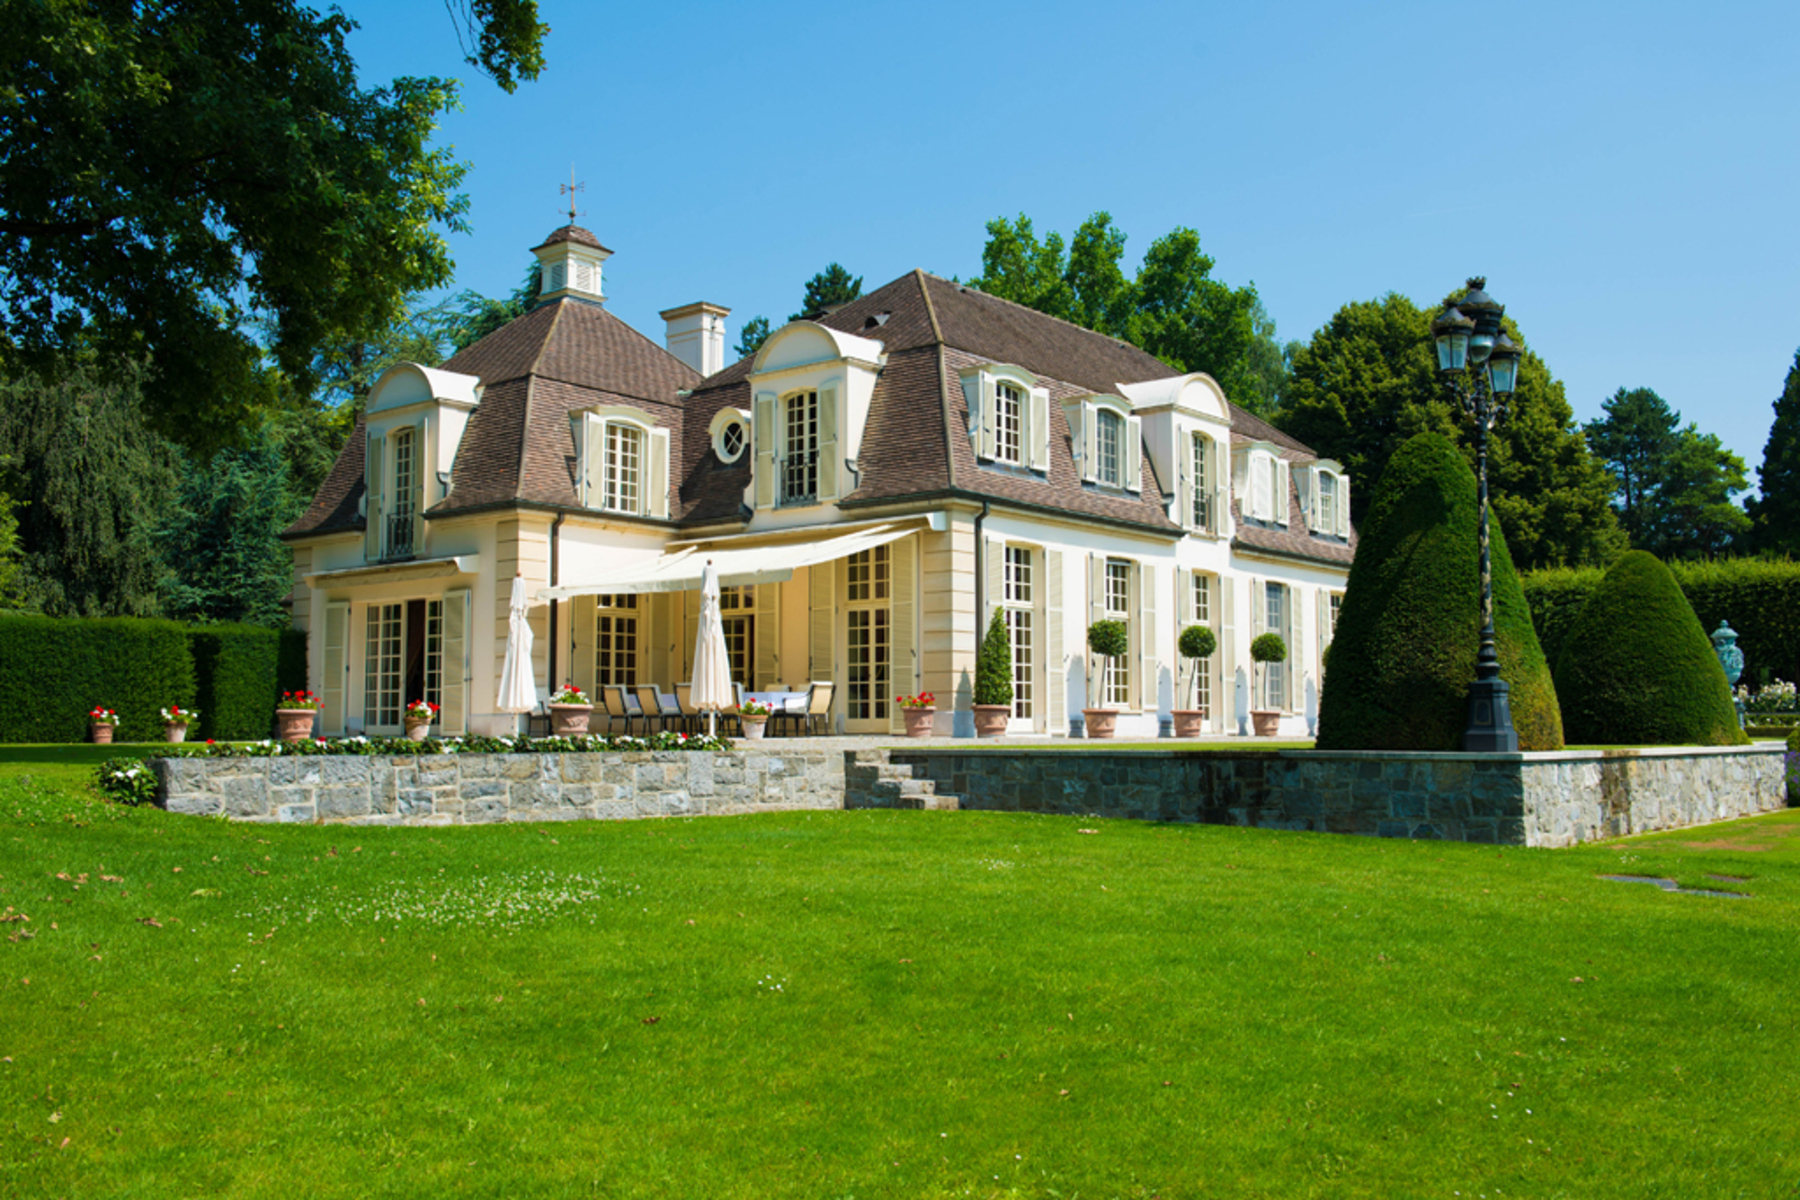 Farm / Estate for Sale at Exceptional property spread out over 8 hectares Cologny Cologny, Geneva 1223 Switzerland